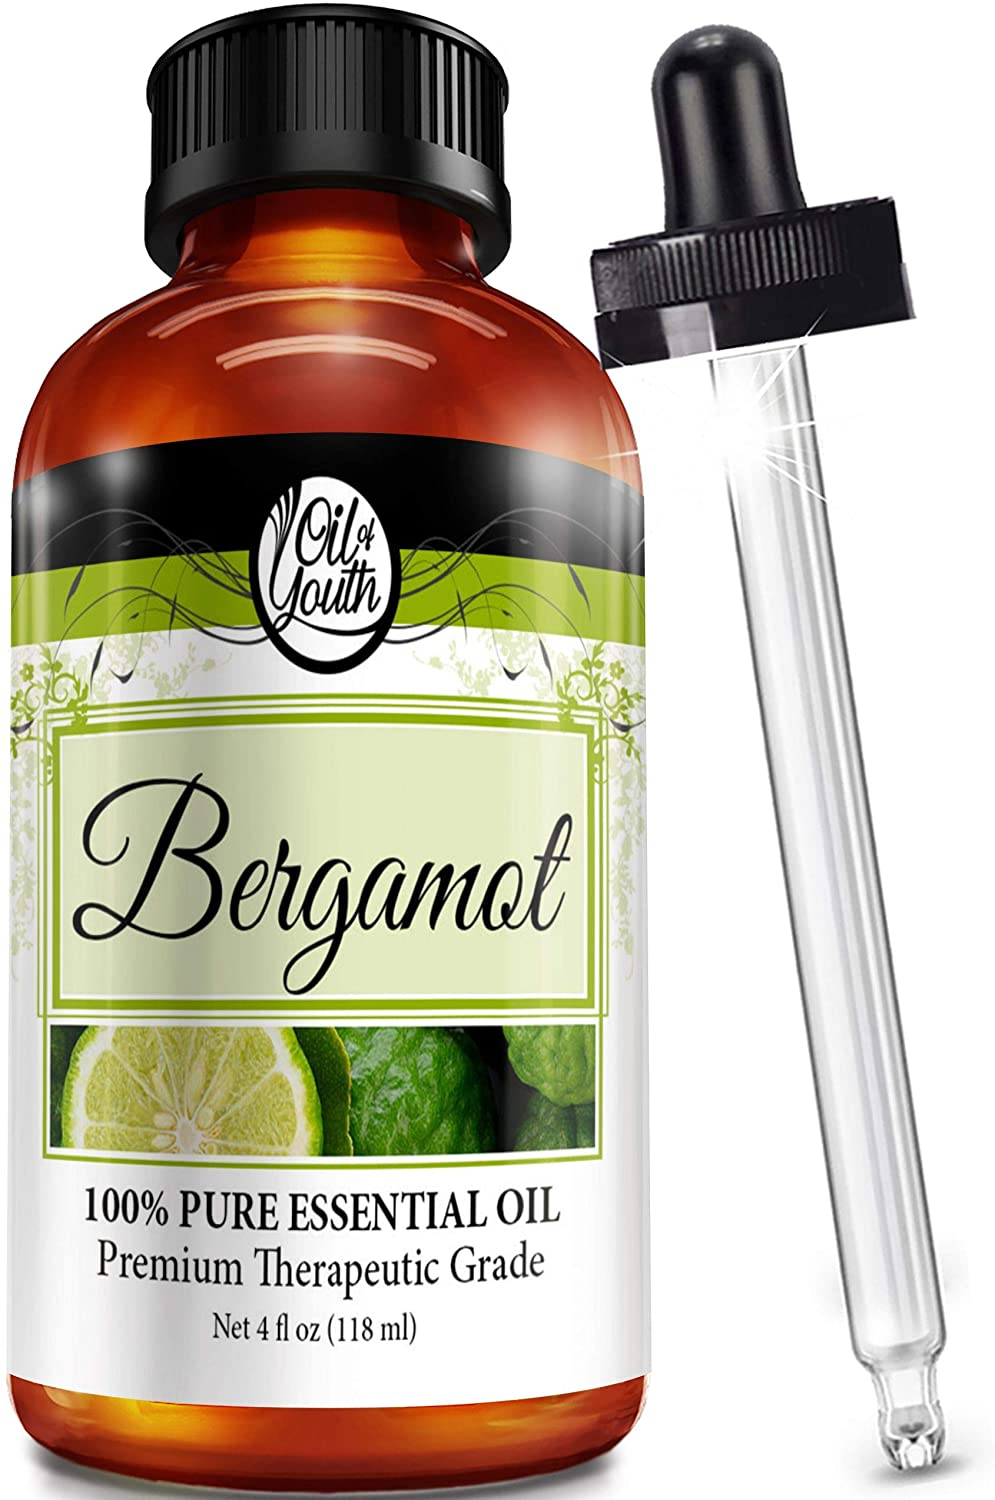 Oil Of Youth Bergamot Essential Oil, 4-Ounce